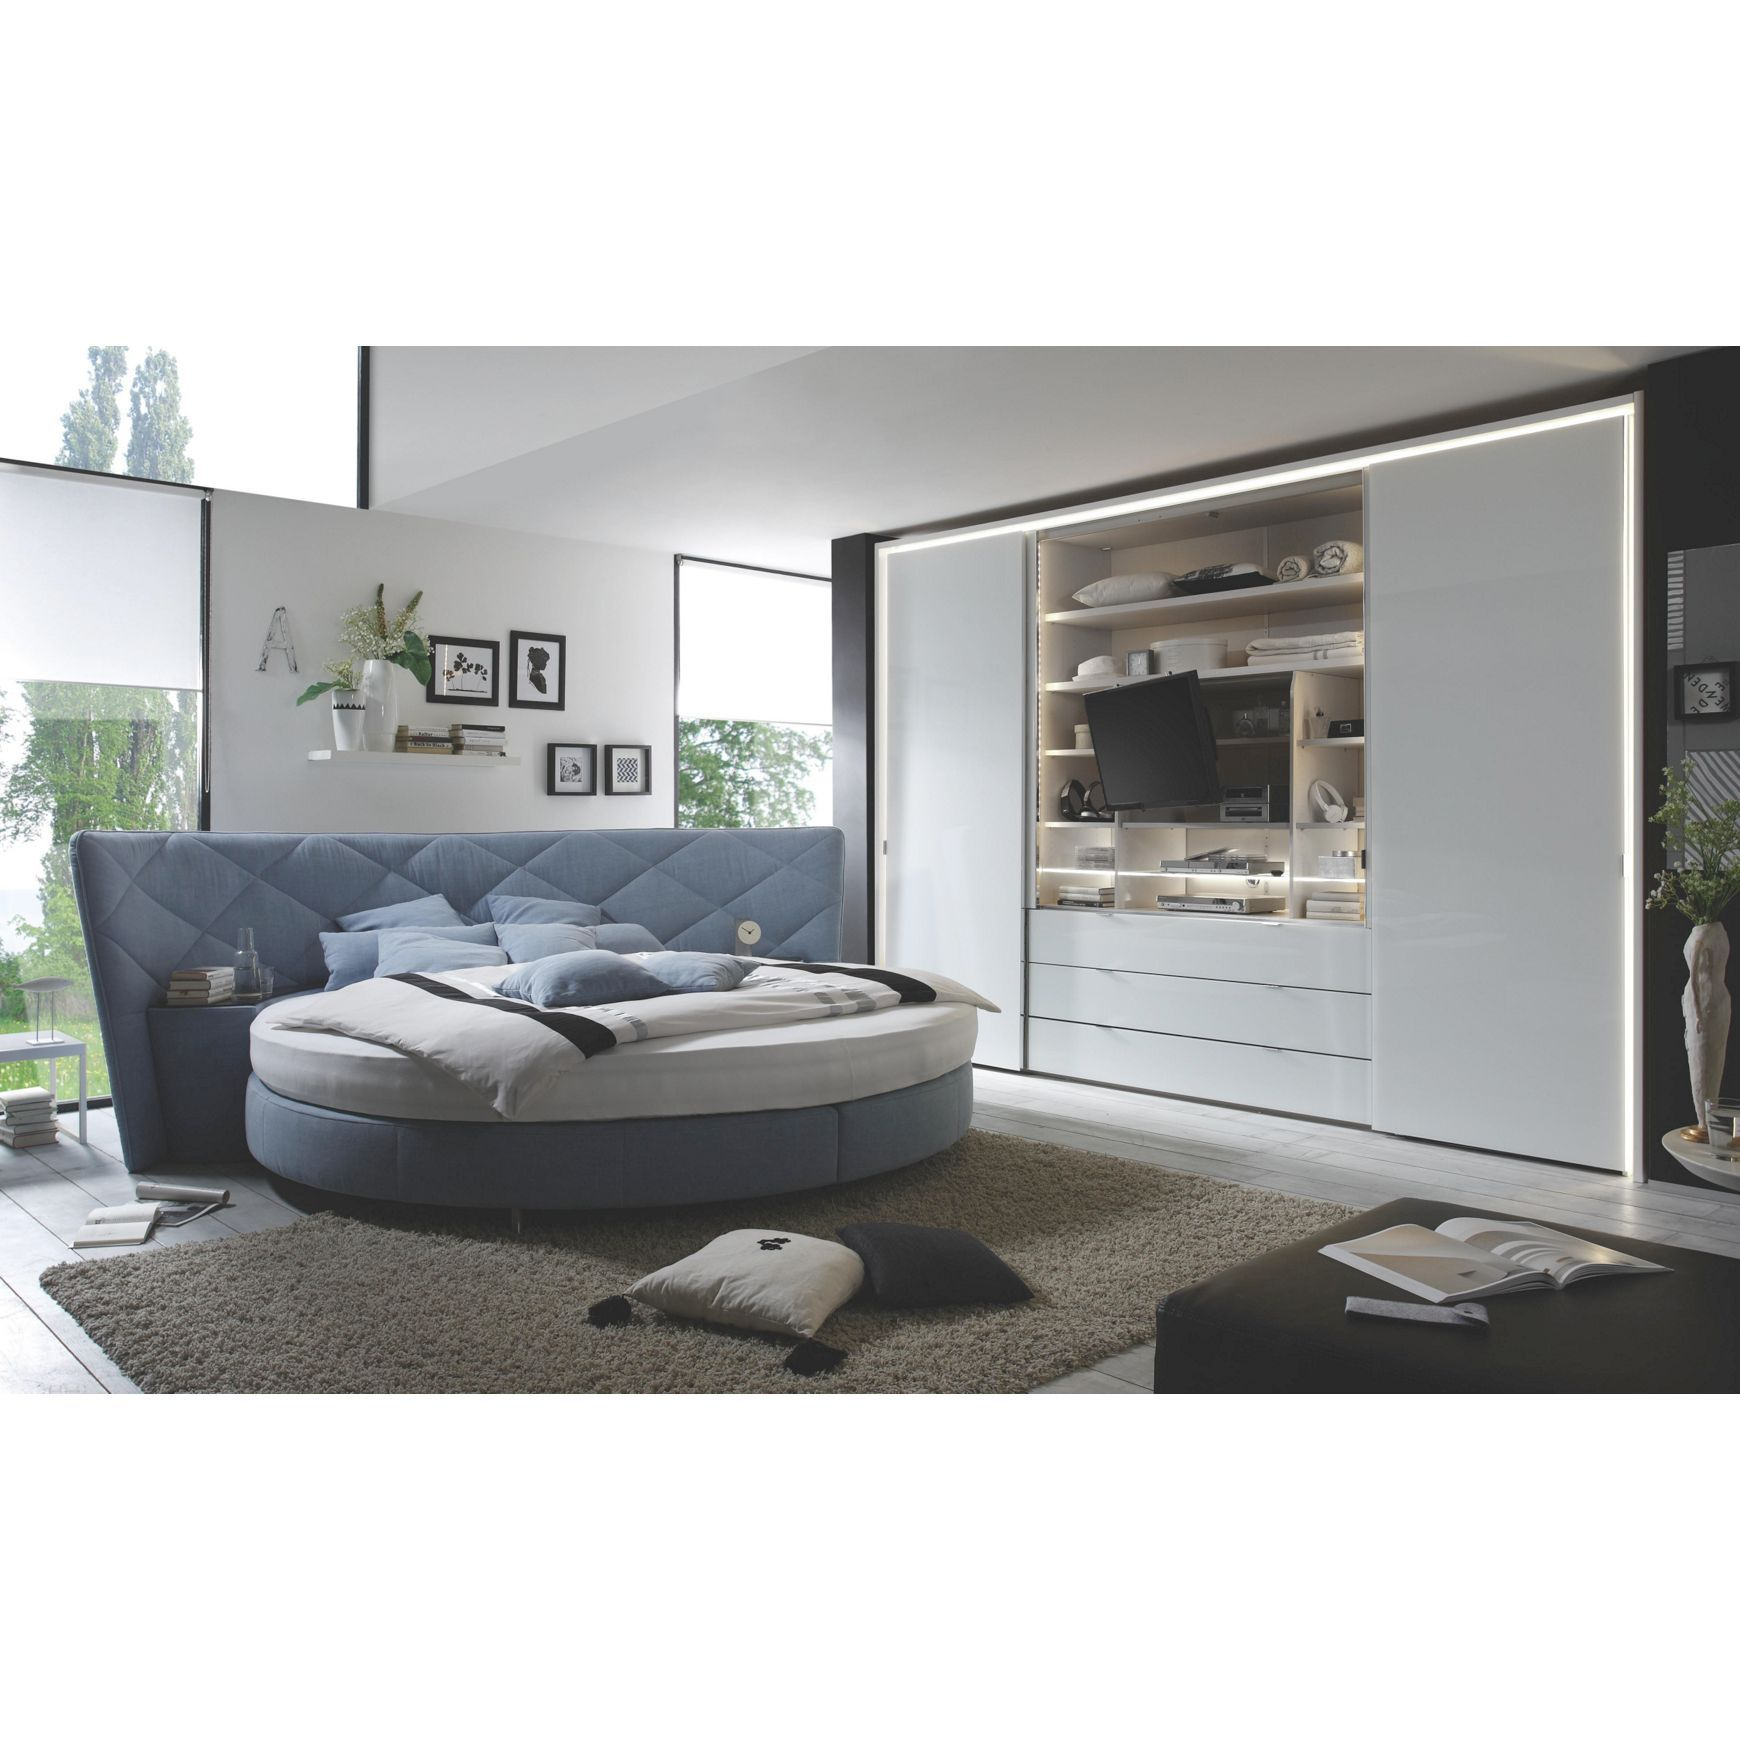 au ergew hnliches boxspringbett in hellem blau boxspringbetten pinterest boxspringbett. Black Bedroom Furniture Sets. Home Design Ideas